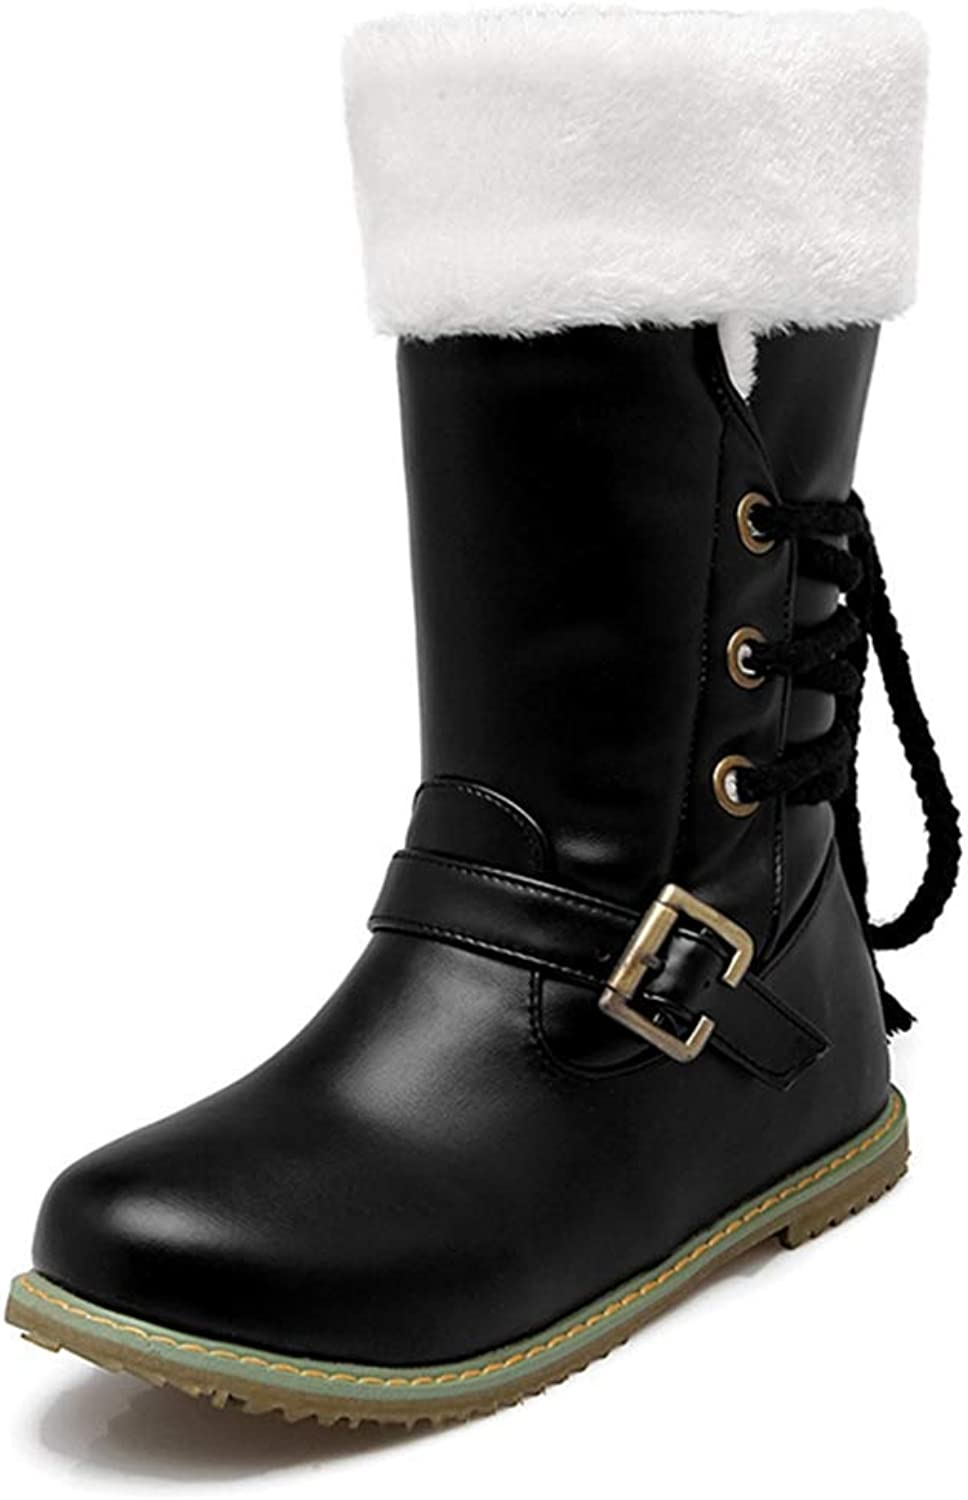 Exclusive shoesbox Women's Weatherproof Flat Platform Boots Buckle Strap Comfortable Winter shoes Lace Up Cotton Snow Boots